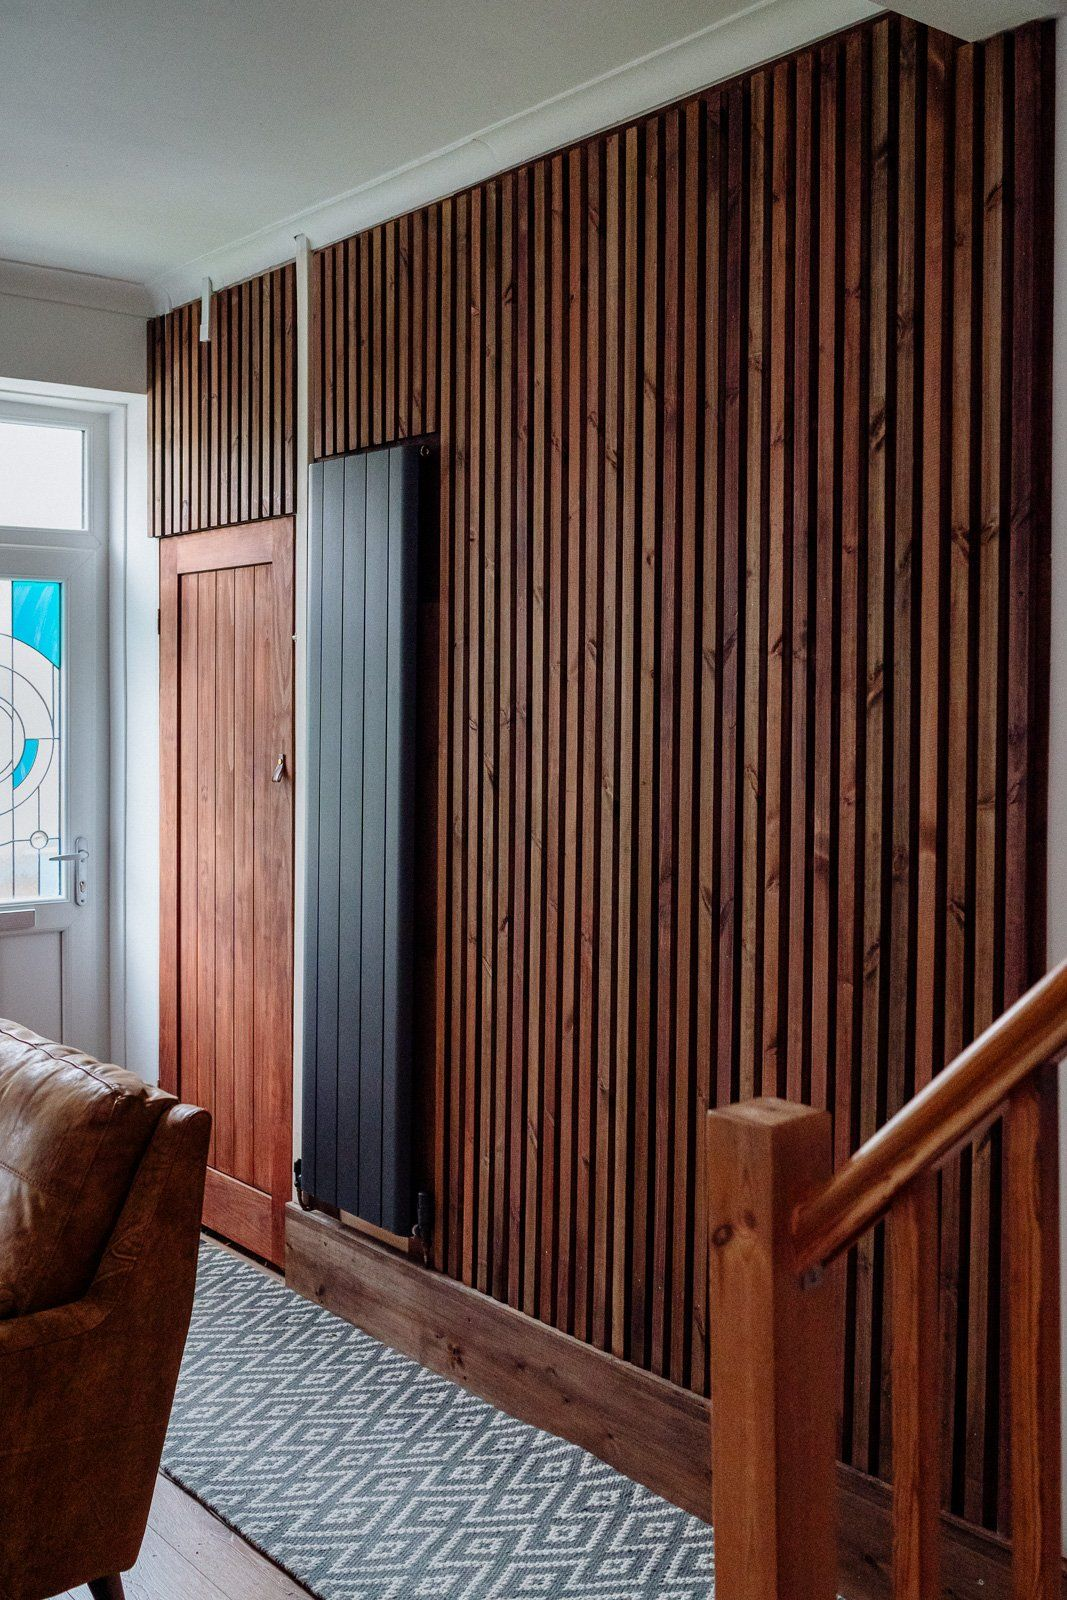 Building a diy vertical wooden slat wall our crafty home